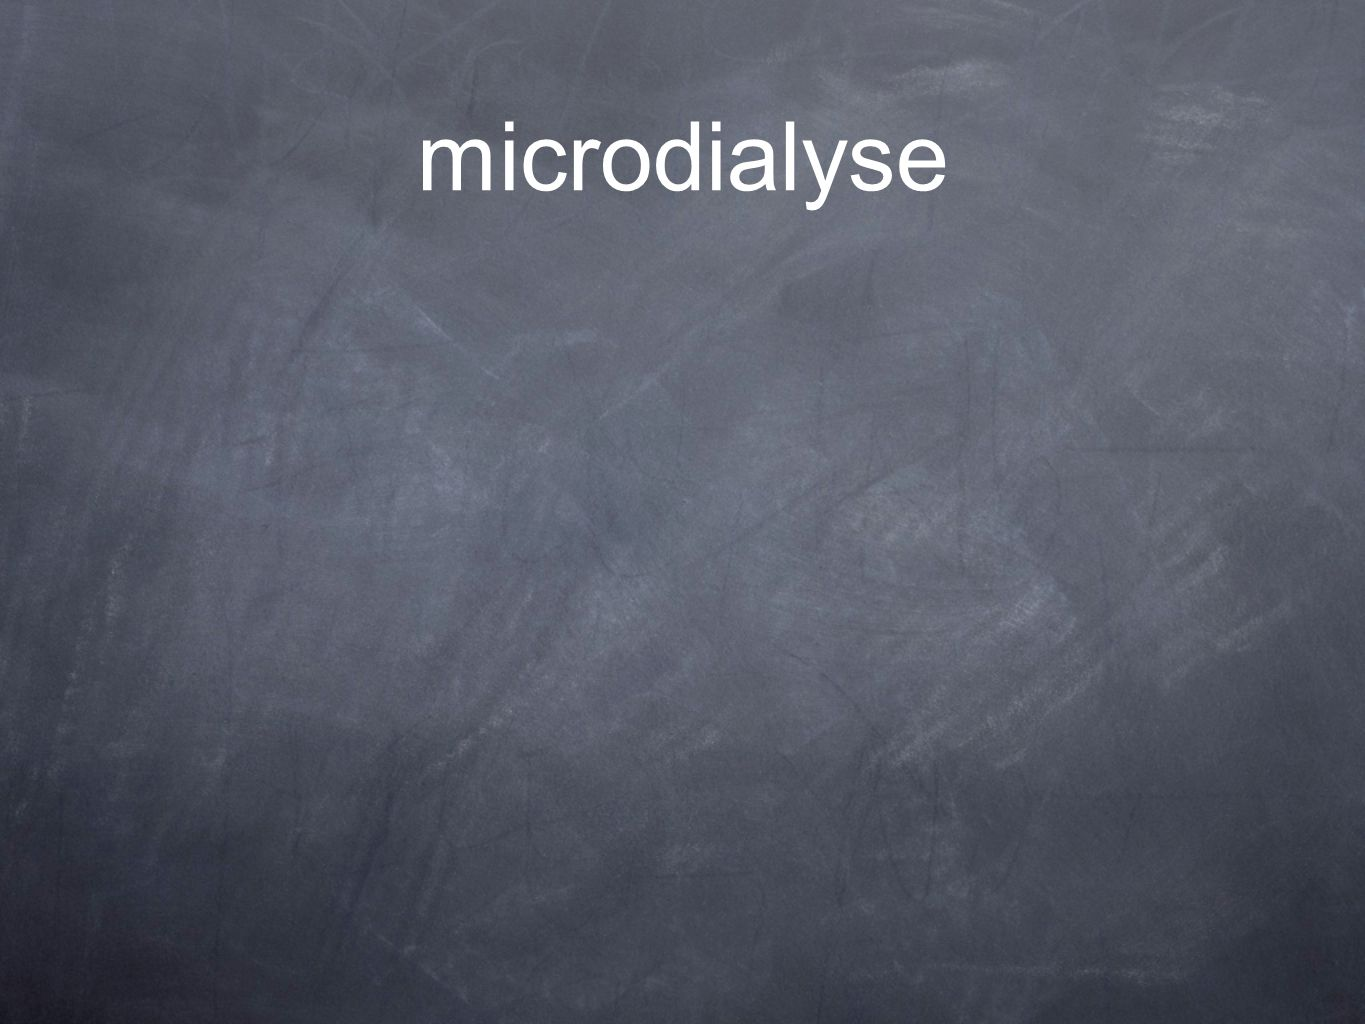 microdialyse